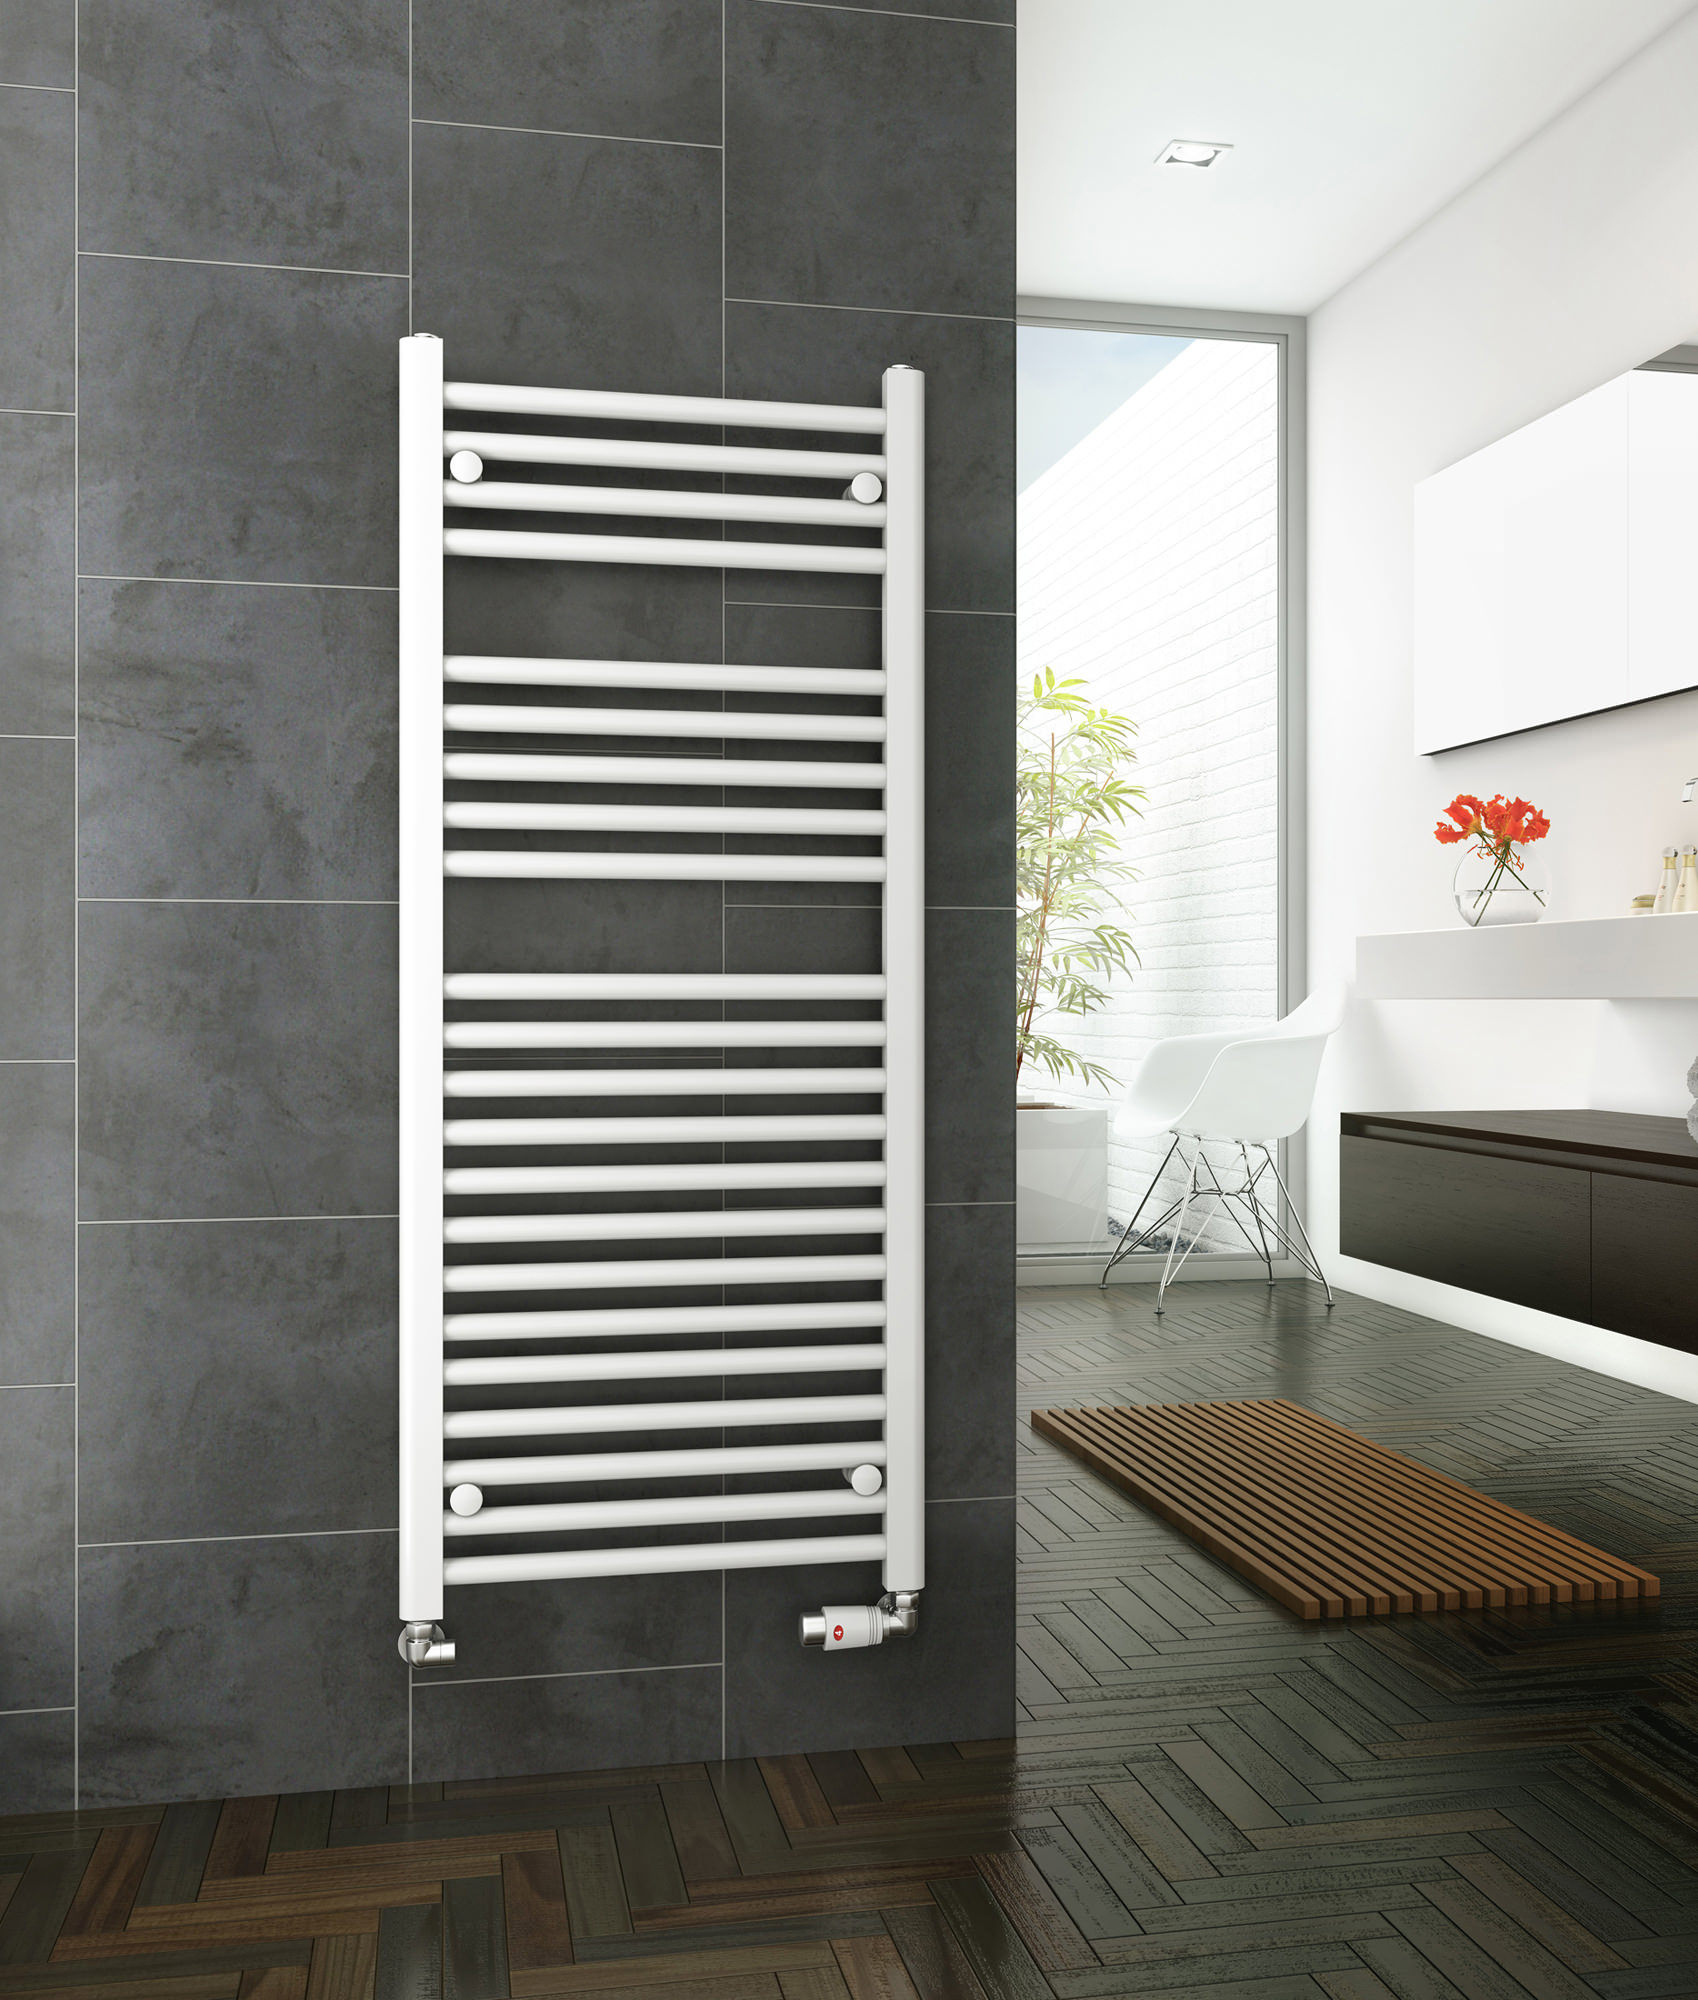 Dq heating metro straight heated towel rail white 600 x 1200mm for Do metro trains have bathrooms